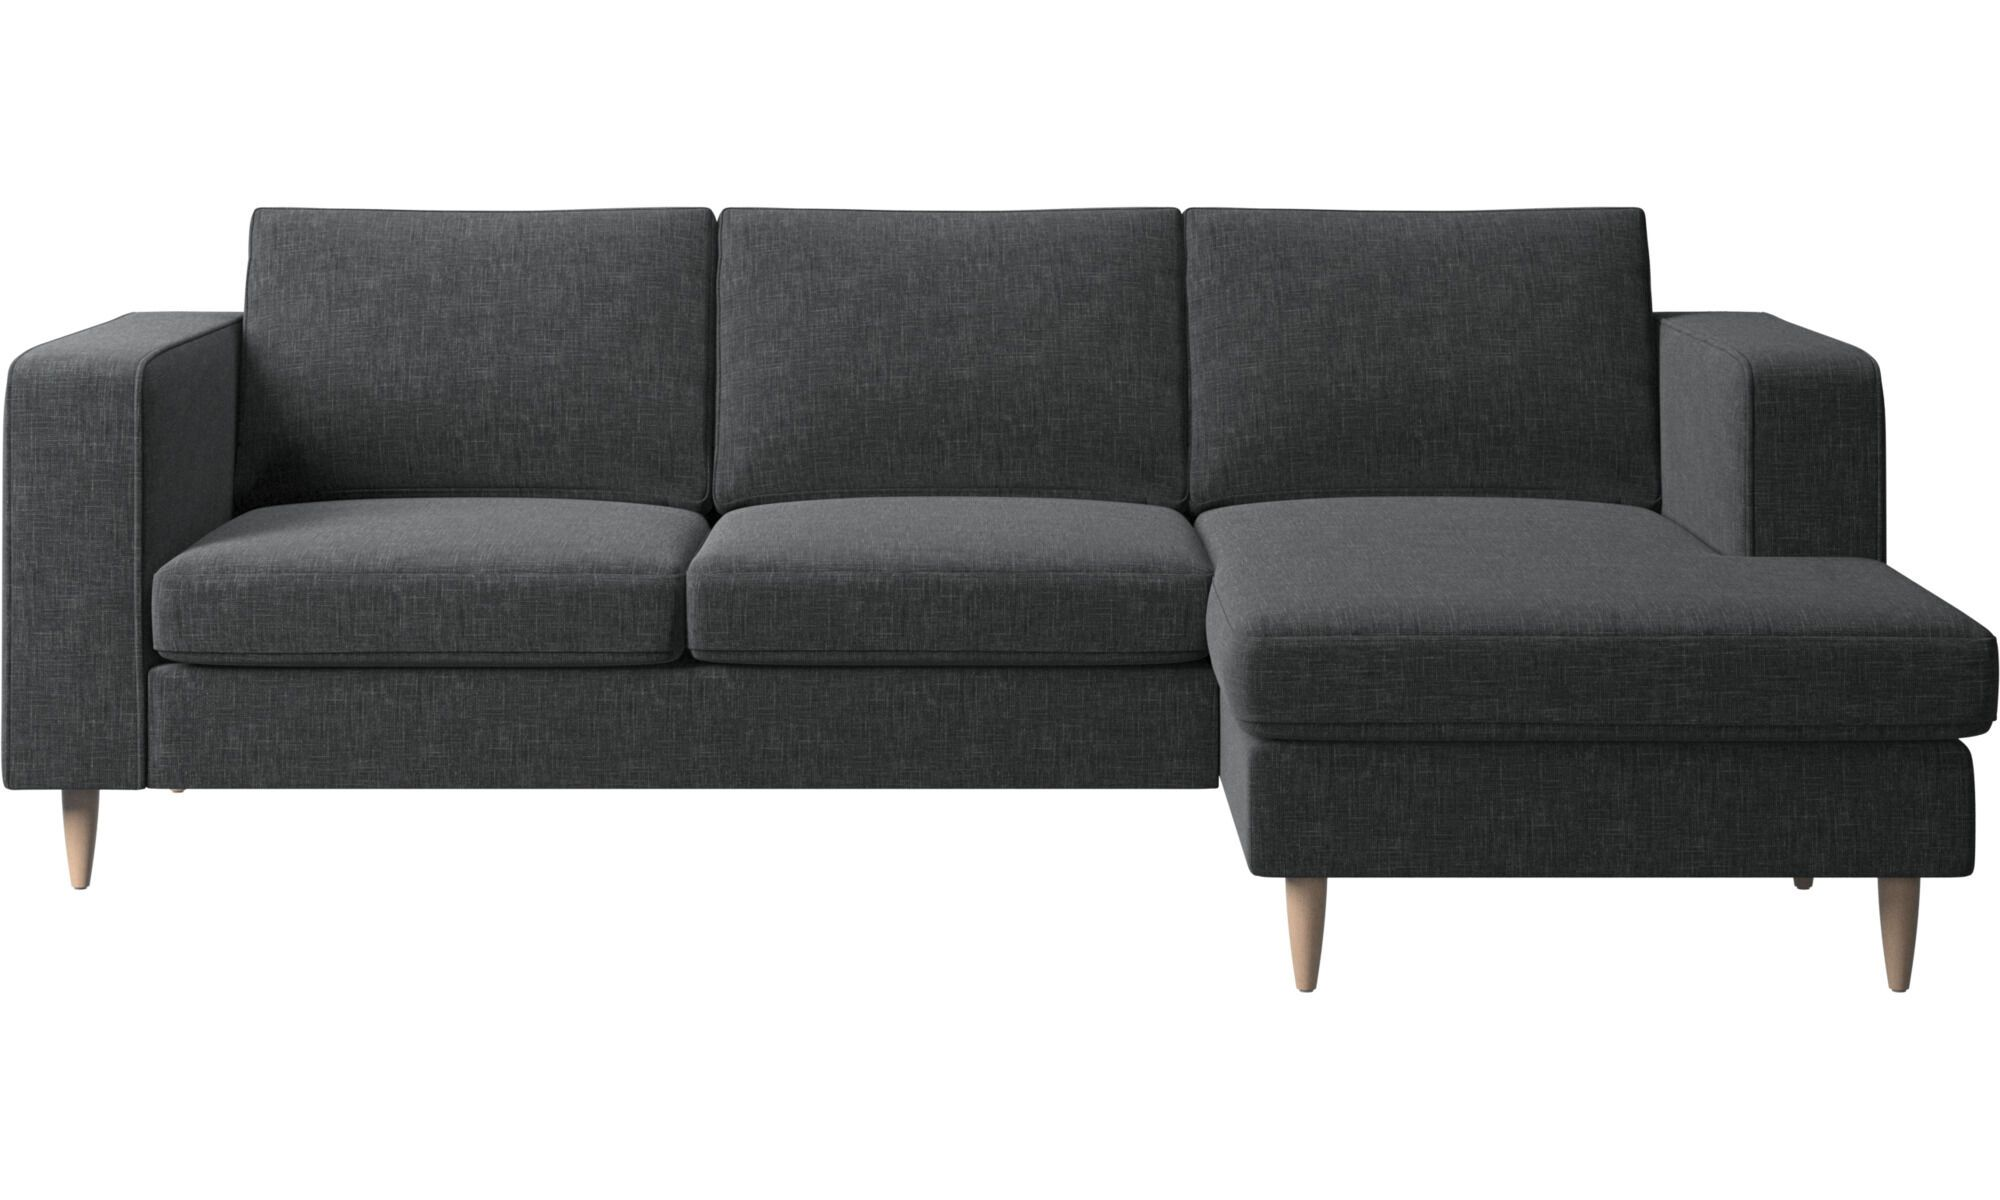 Indivi Sofa With Resting Unit Comfortable Chaise Chaise Longue Chaise